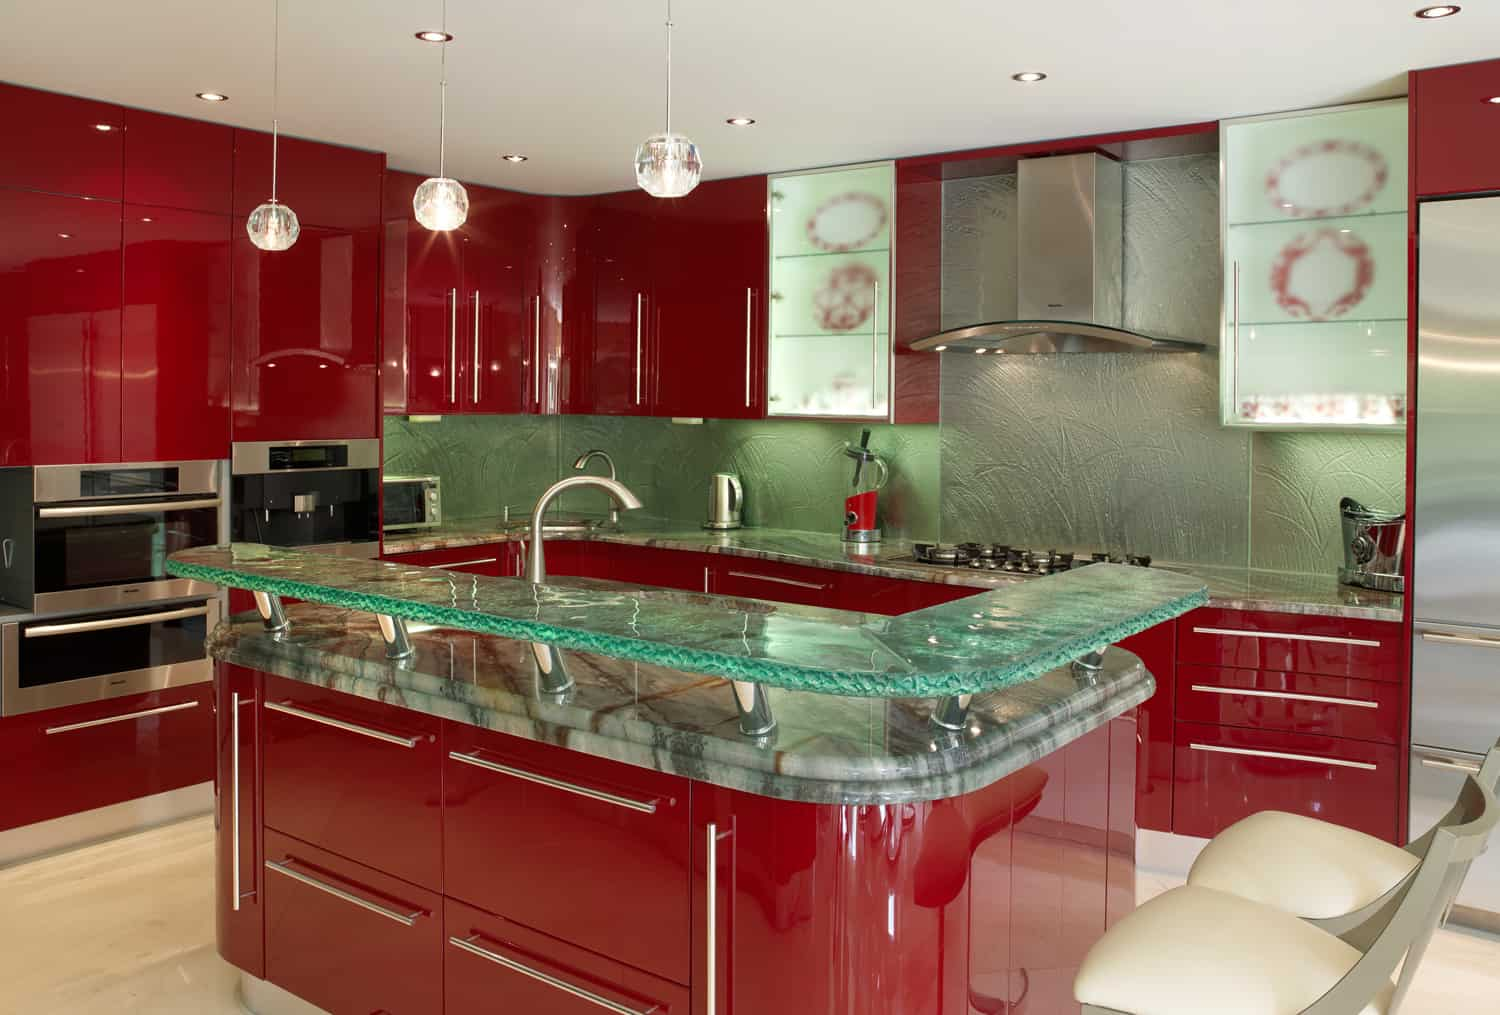 Modern kitchen countertops from unusual materials 30 ideas for Kitchen countertops